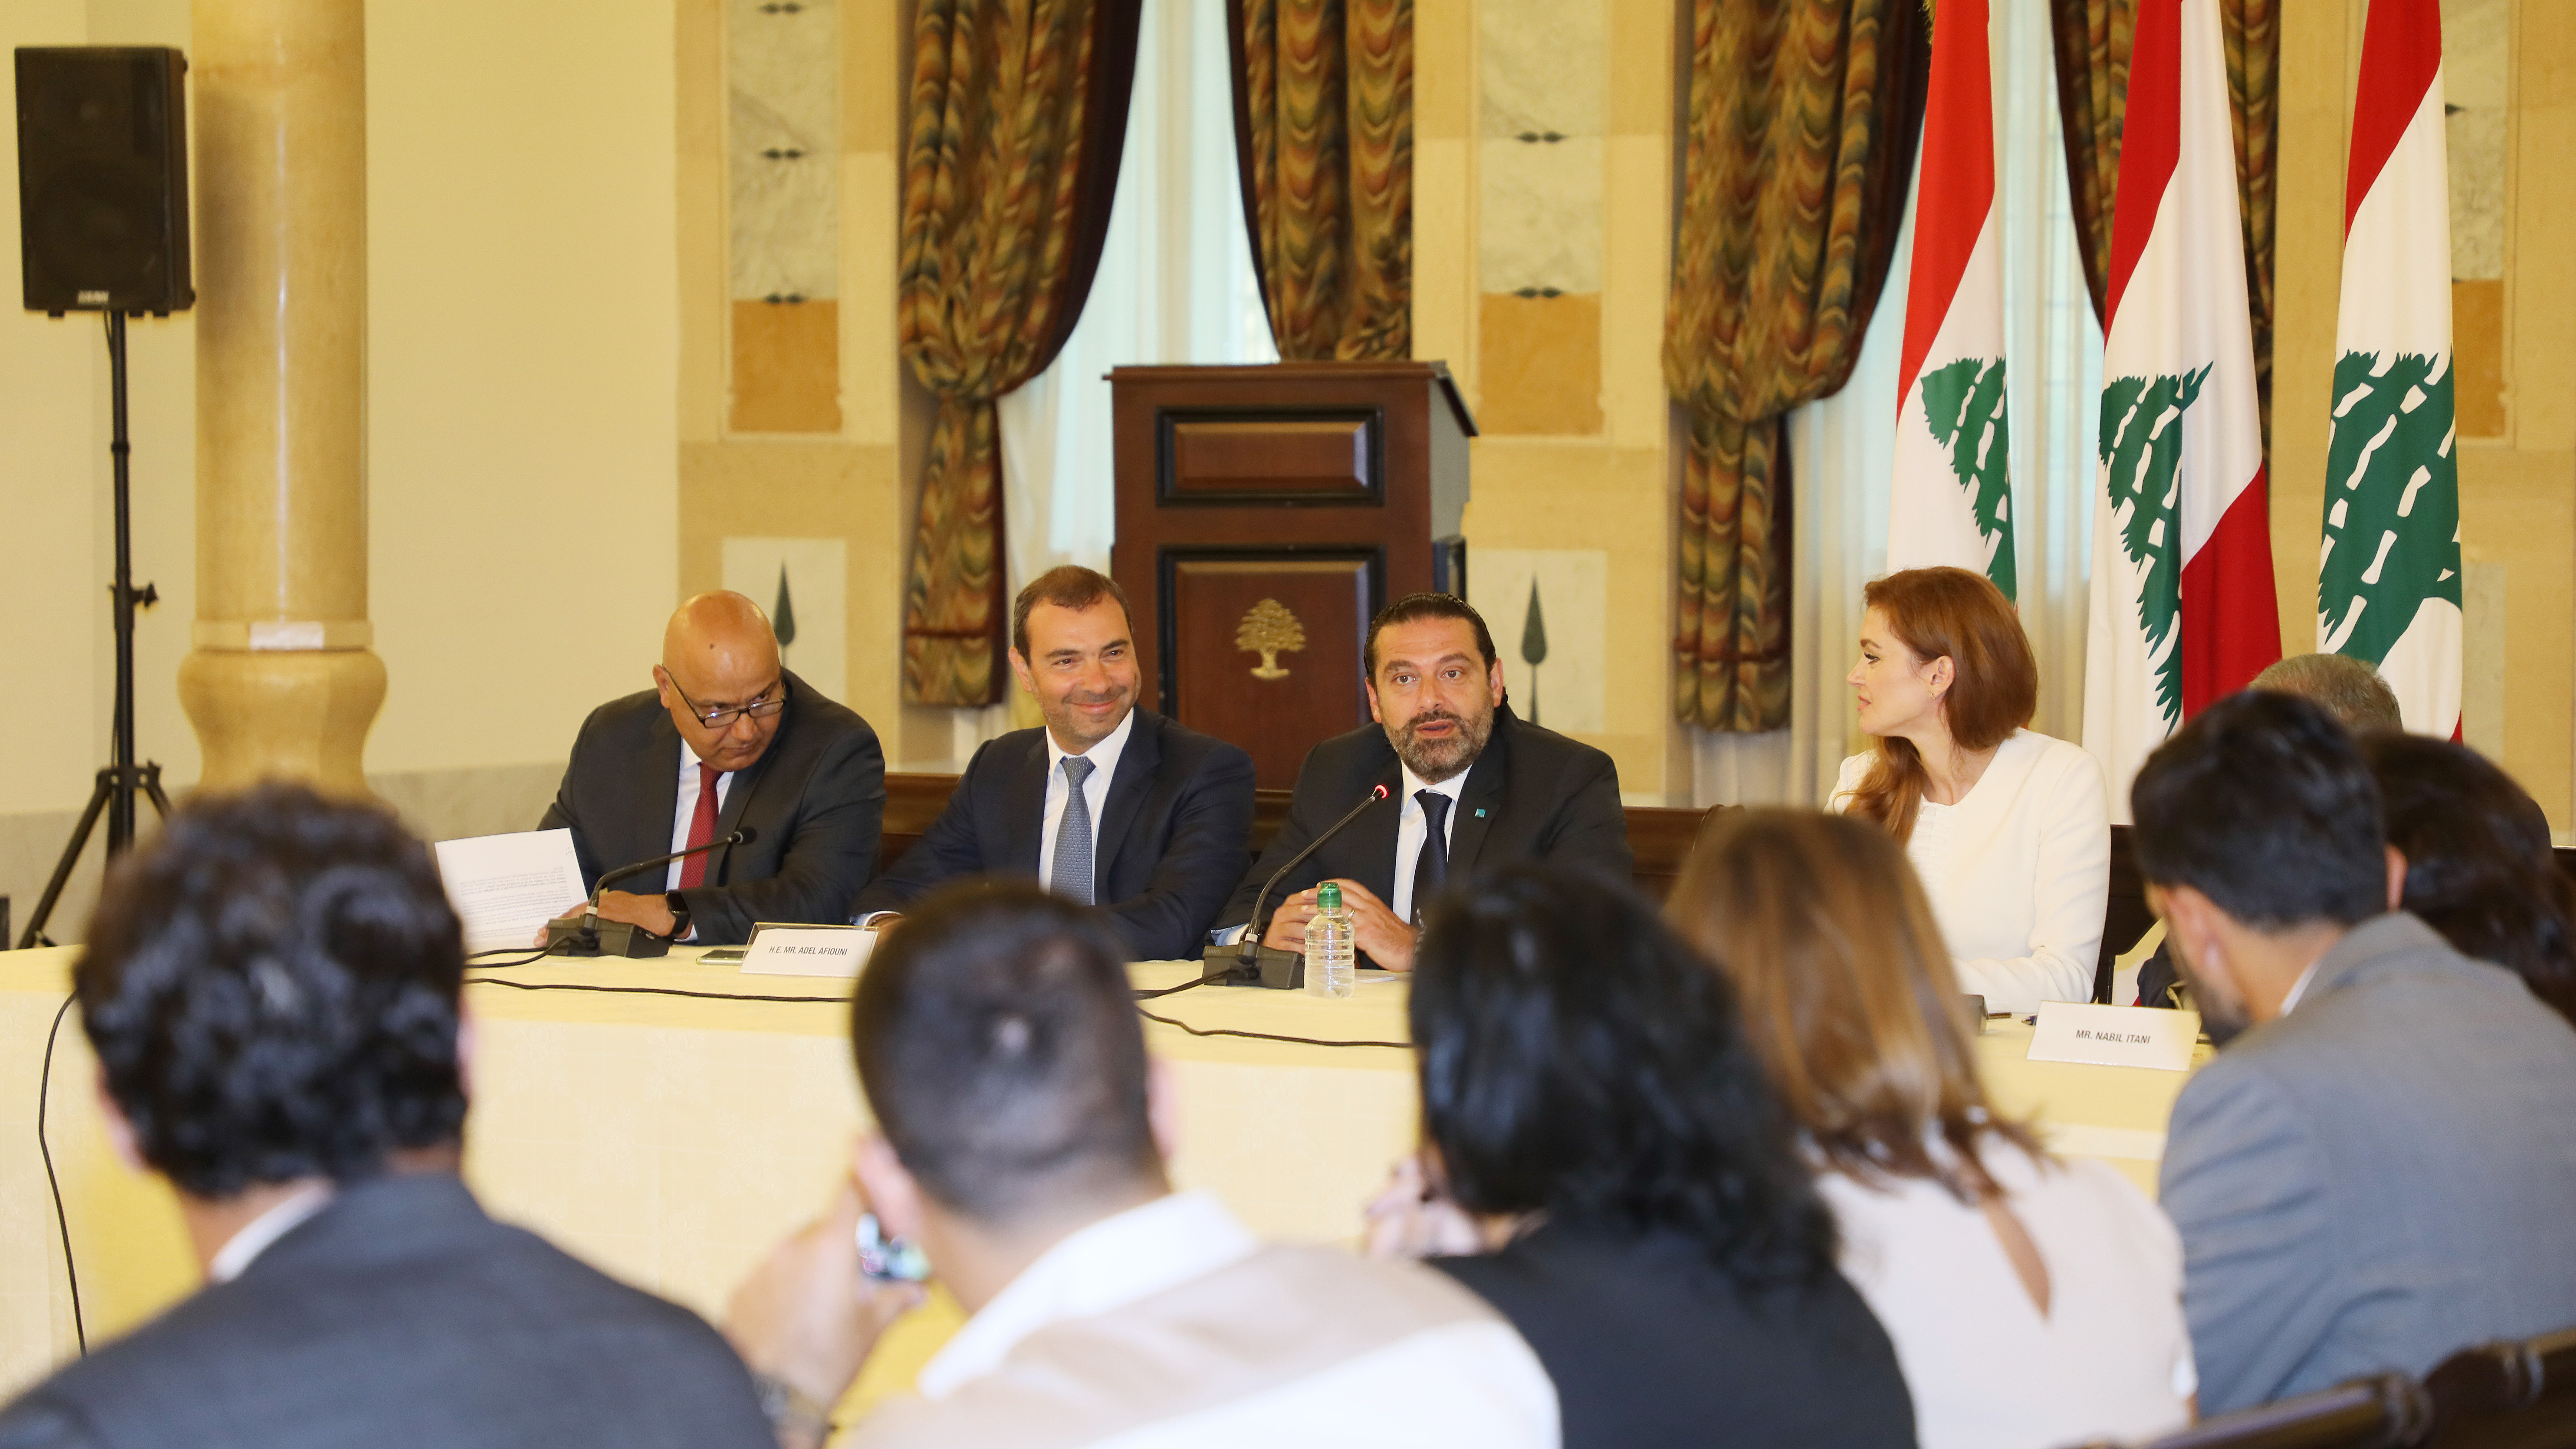 Pr Minister Saad Hariri Attends a Conference for Ecomerce at the Grand Serail